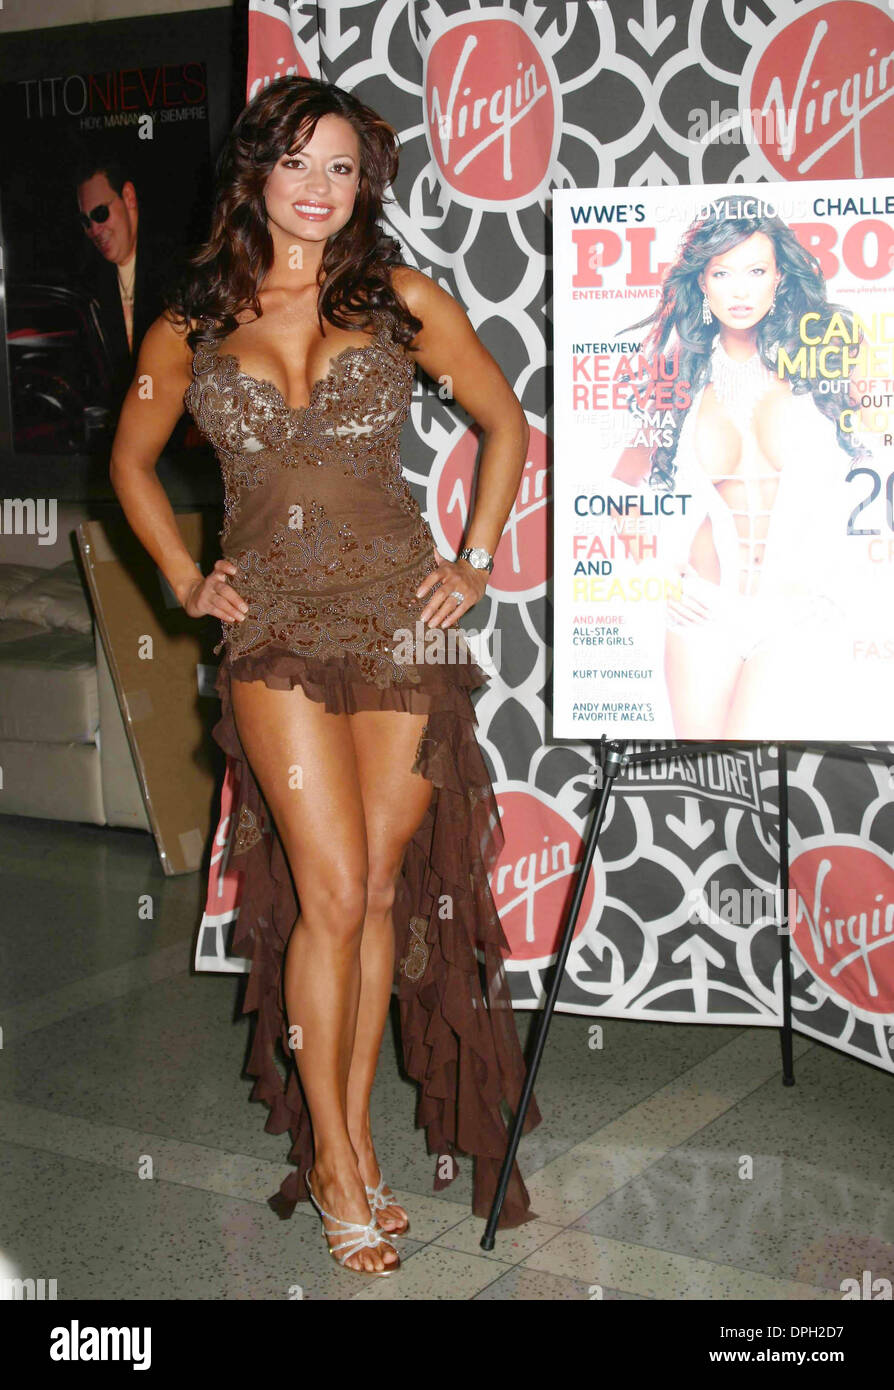 Candice Michelle Playboy Pics